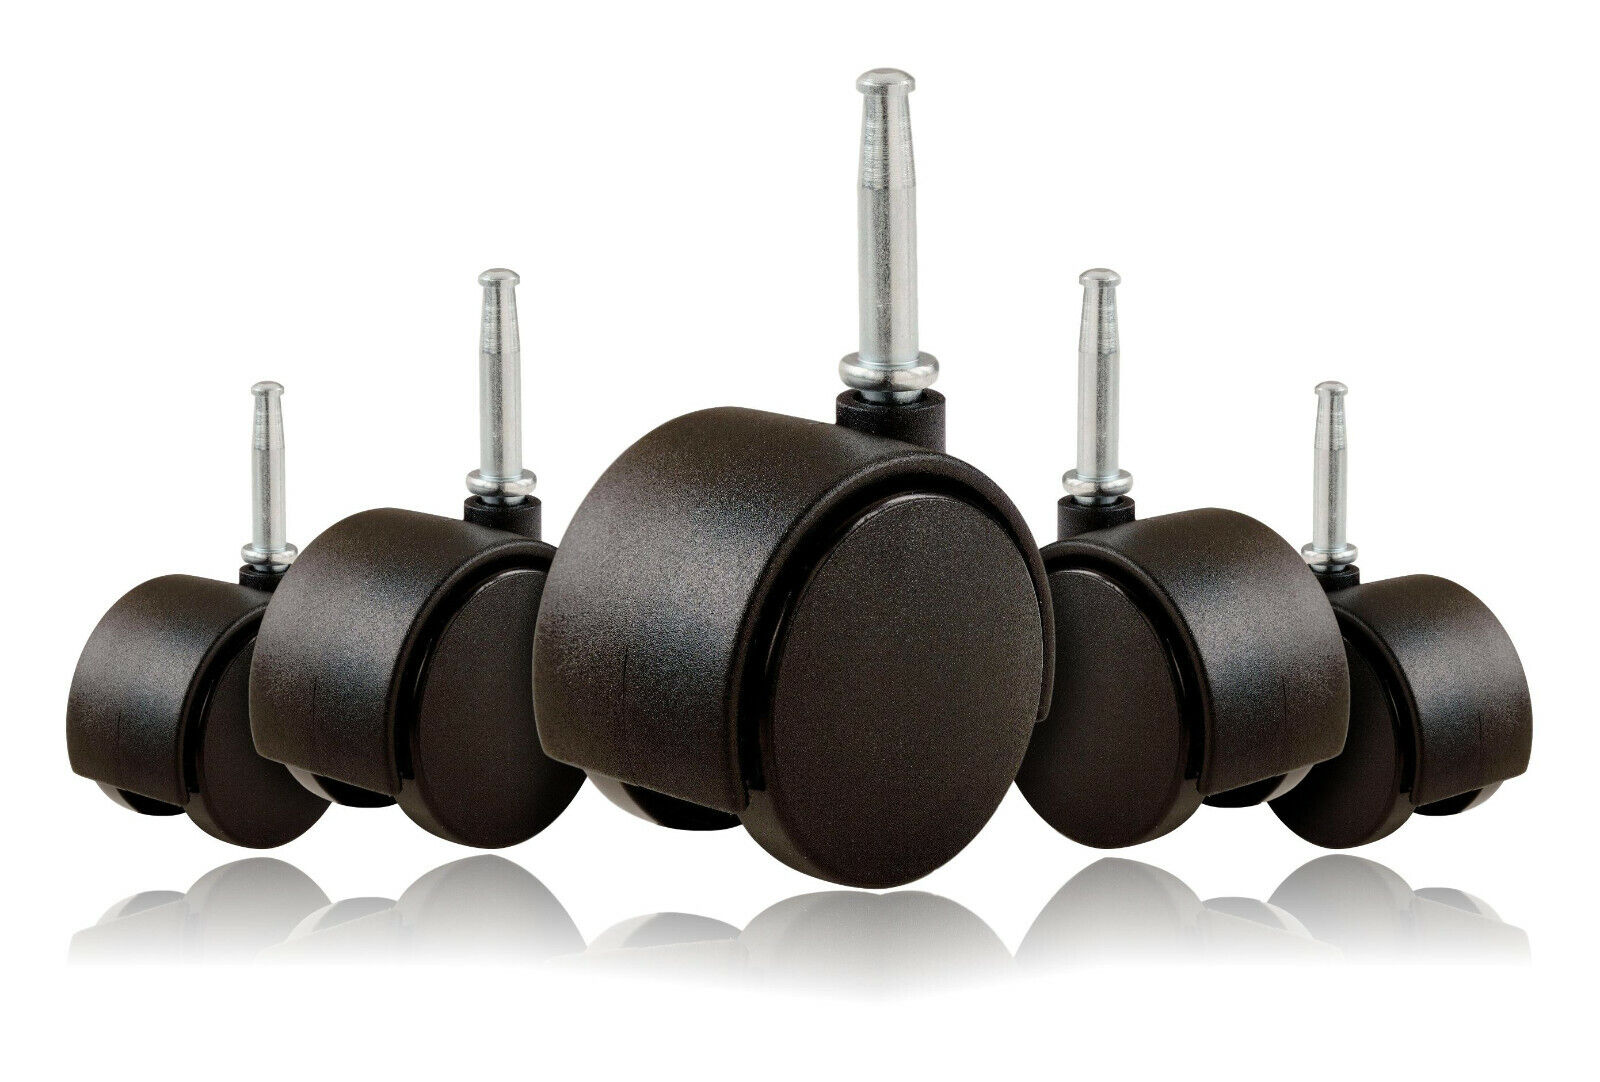 2″ Inch Office Chair Twin Wheel Casters 5/16″ Metal Stem [Black] – Set of 5 Business & Industrial